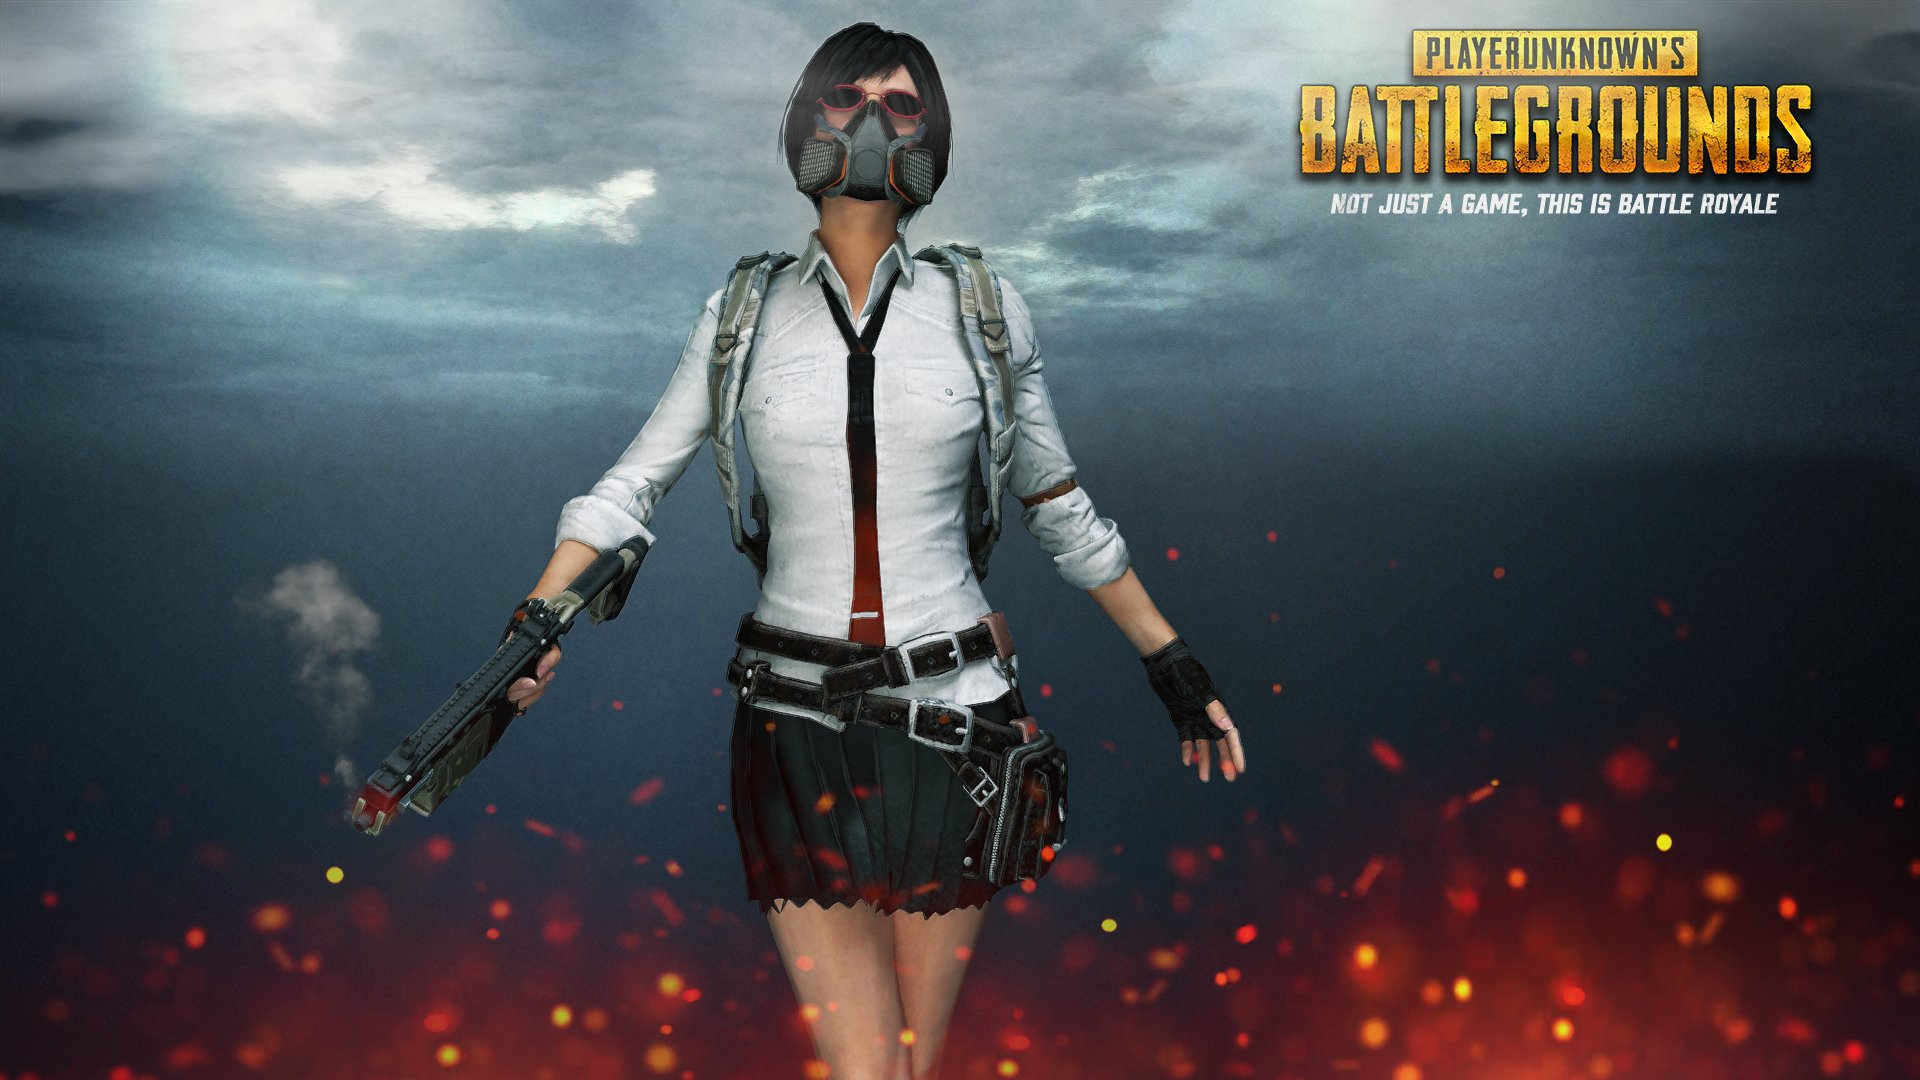 Wallpapers Of Pubg For Pc: Background Images - Read Games Review